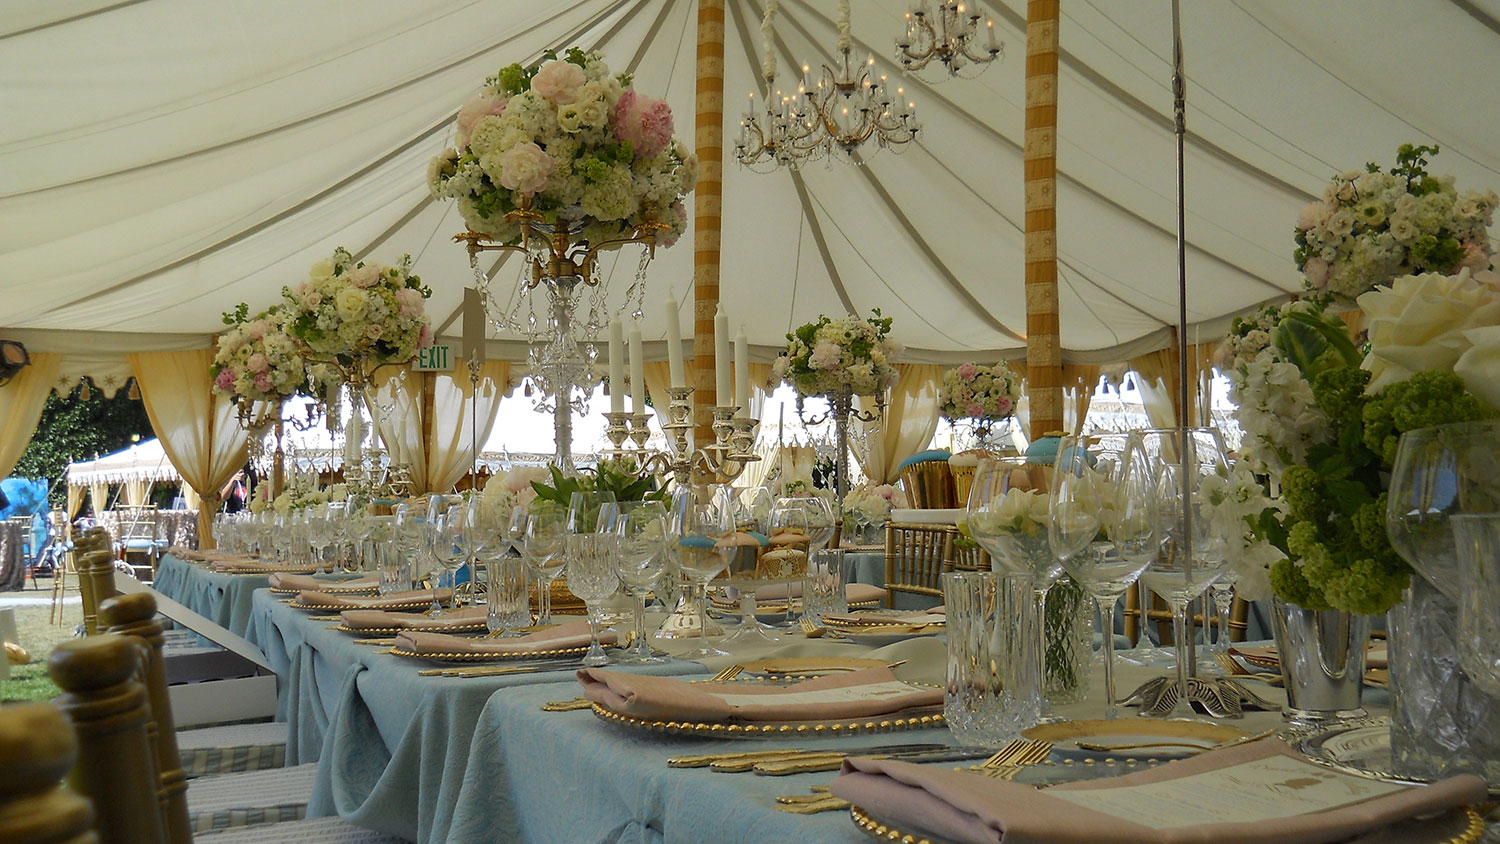 raj-tents-classic-wedding-reception-tent.jpg